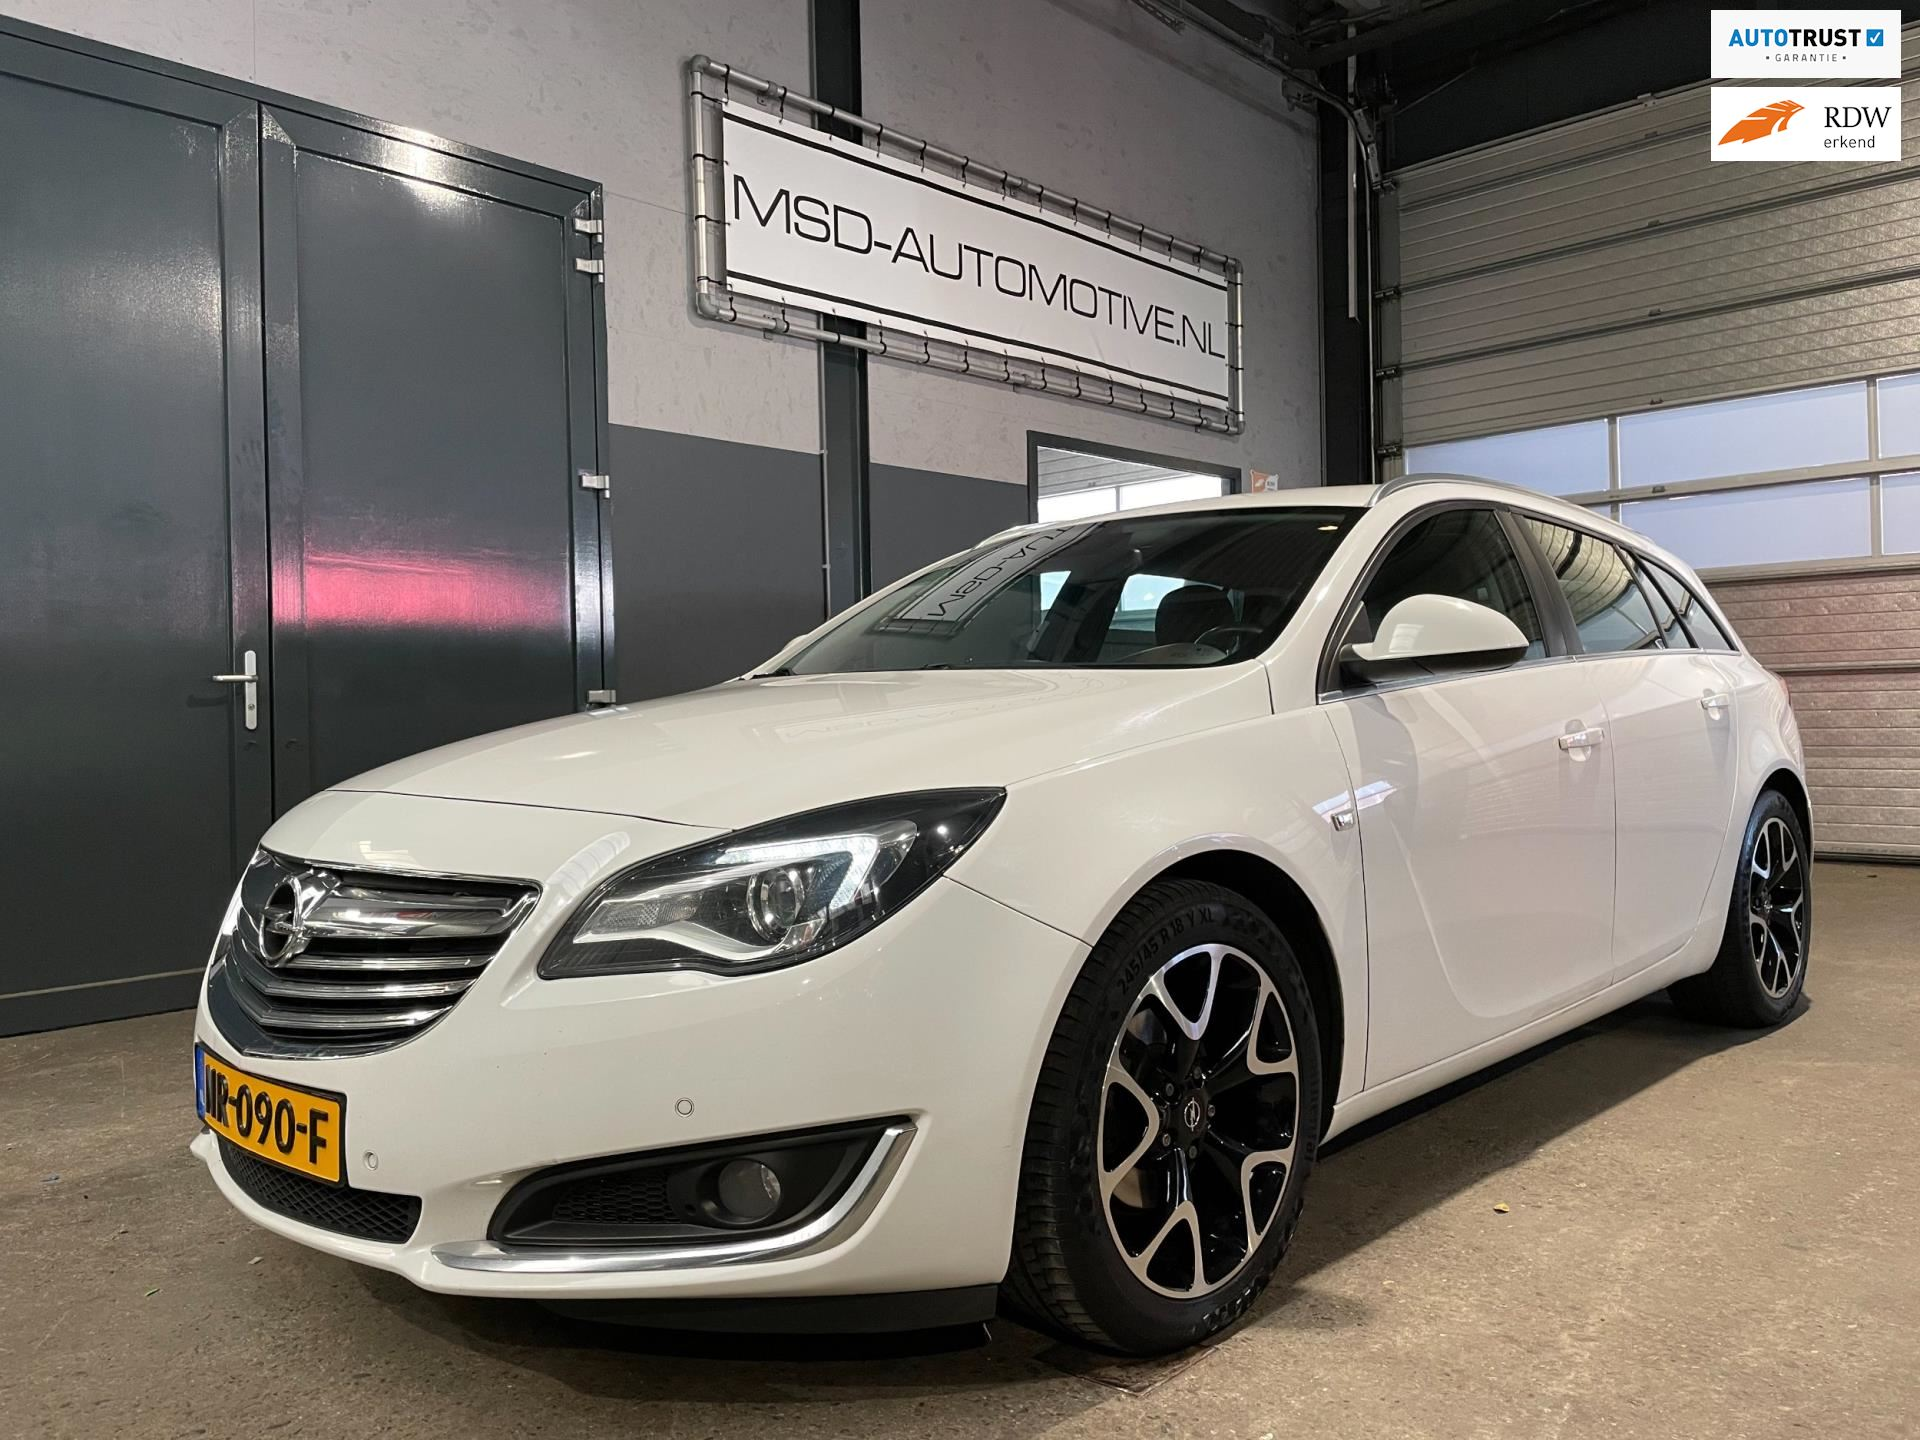 Opel Insignia Sports Tourer occasion - MSD Automotive